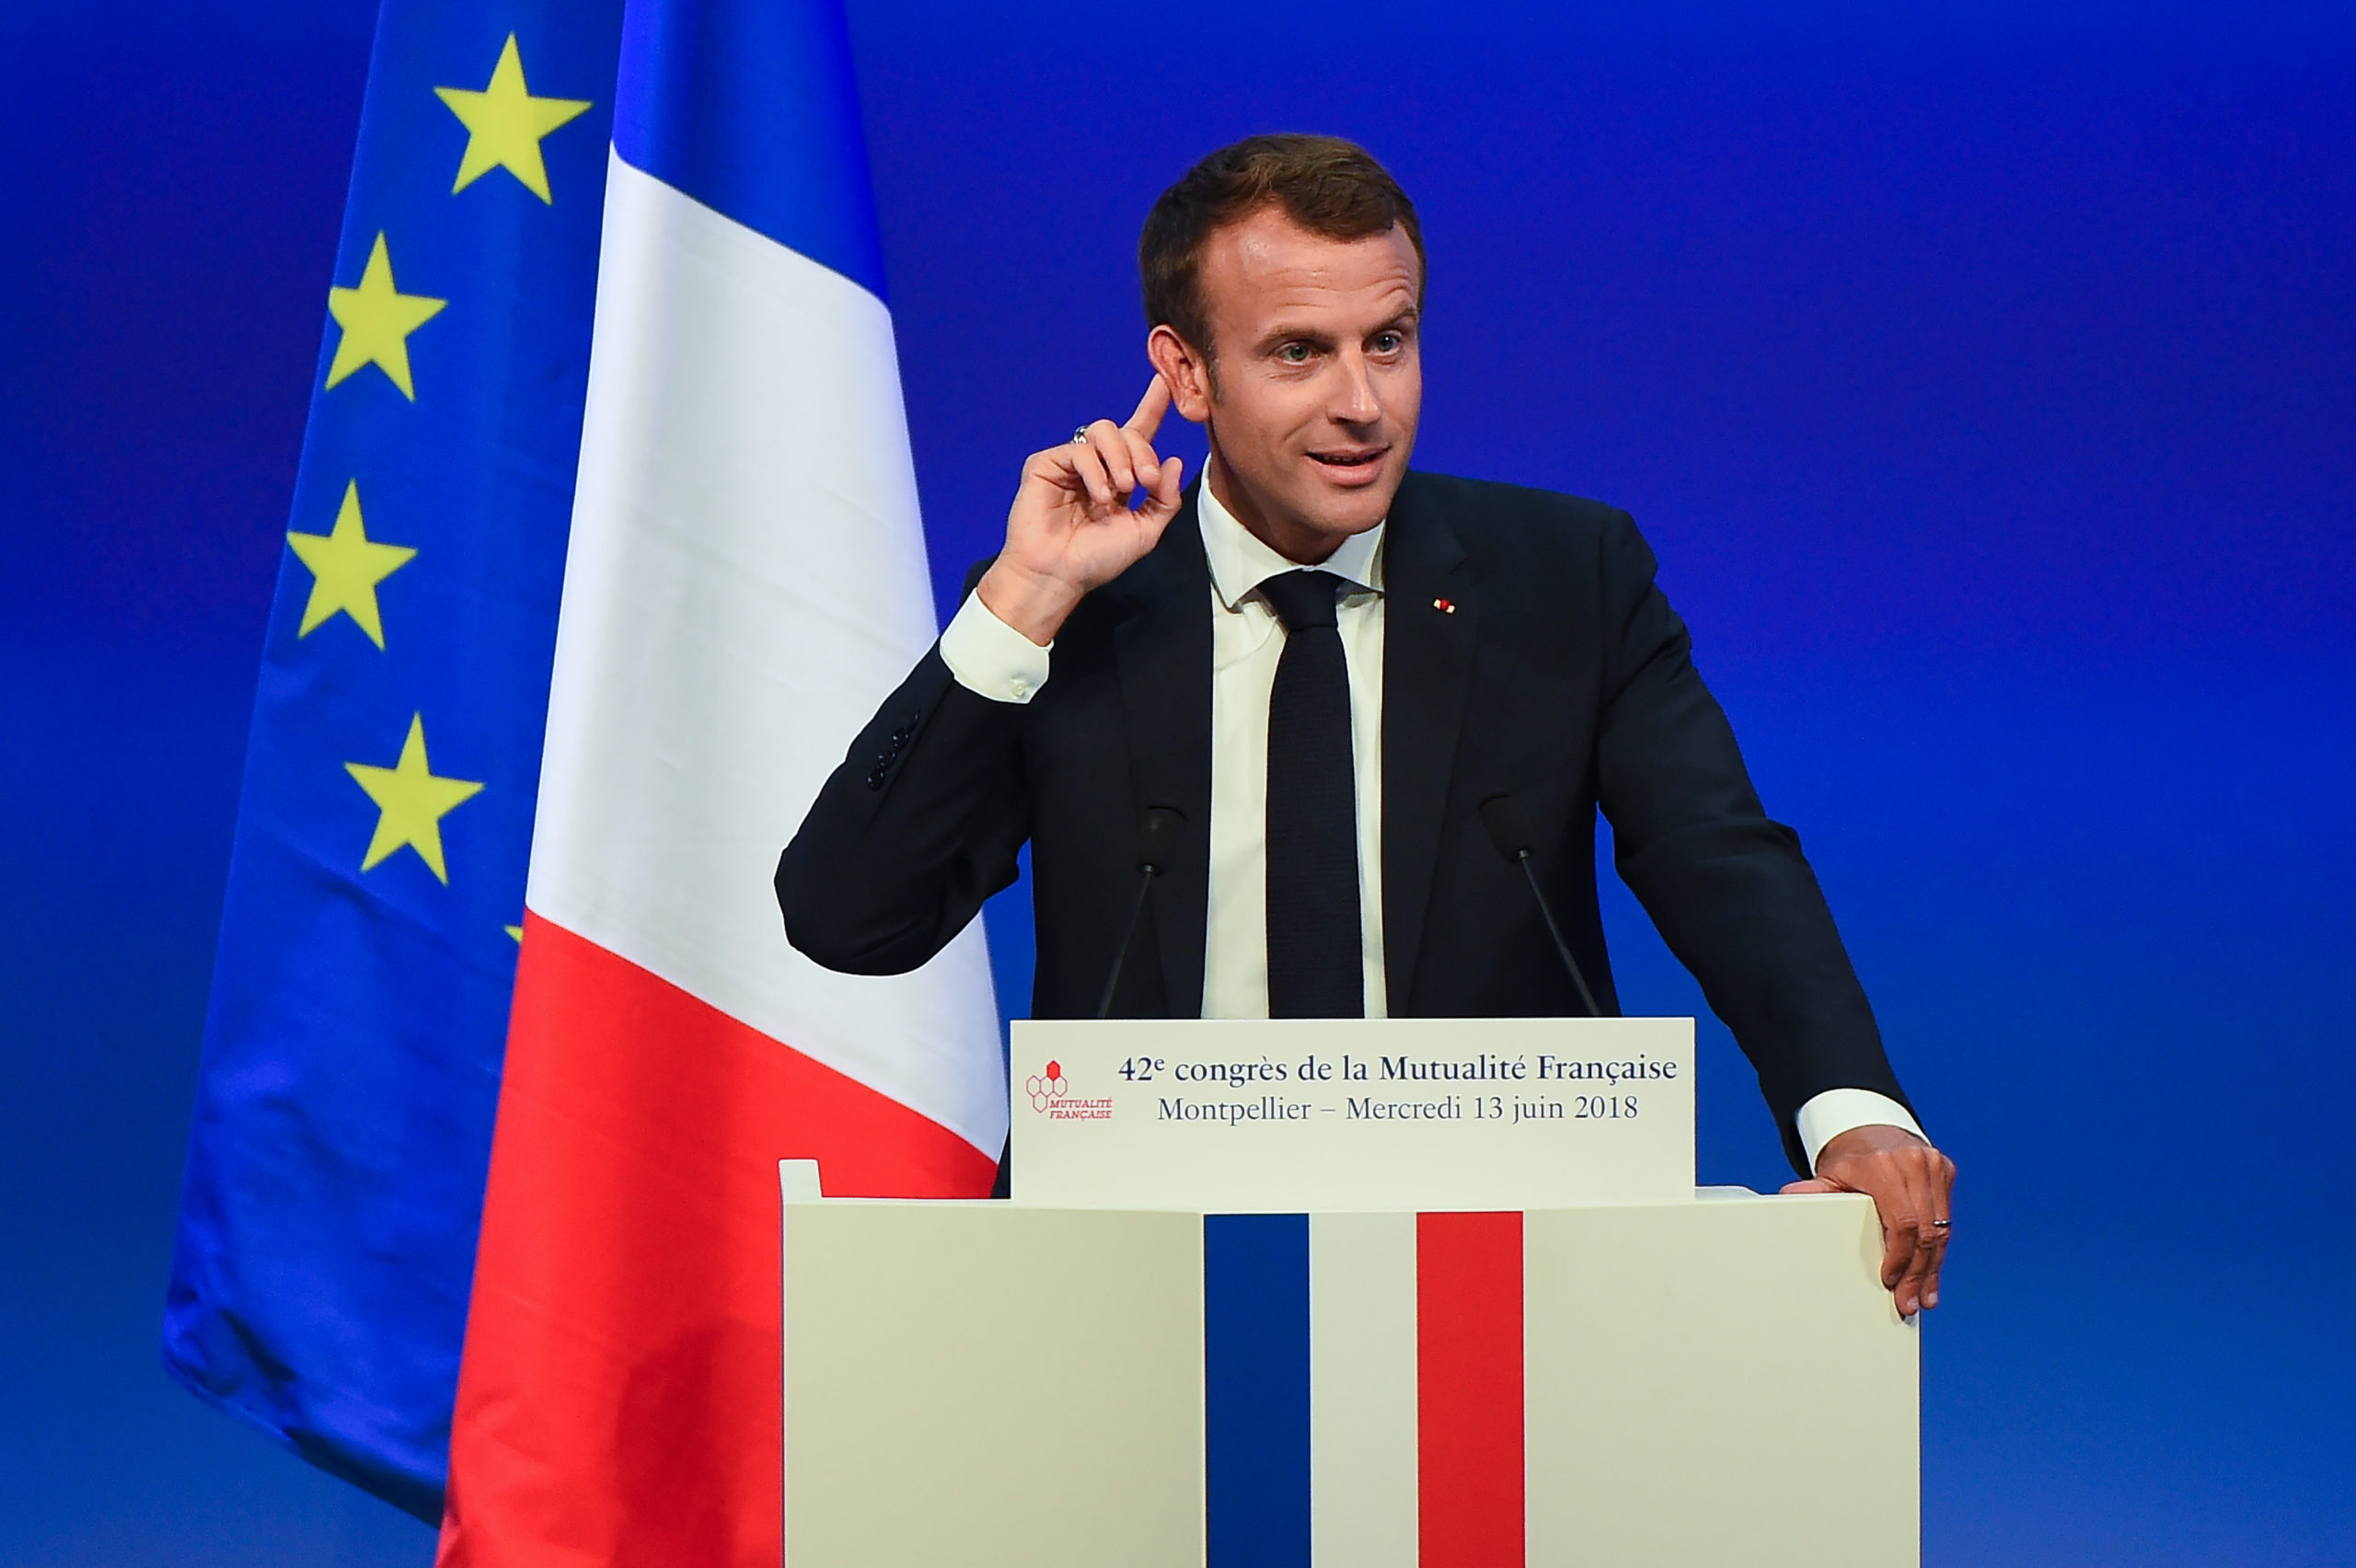 French President Emmanuel Macron gives a speech on social security policies during the '42nd Congres de la mutualite francaise' in the southern city of Montpellier on June 13, 2018. (Photo by SYLVAIN THOMAS / AFP) (Photo by SYLVAIN THOMAS/AFP via Getty Images)